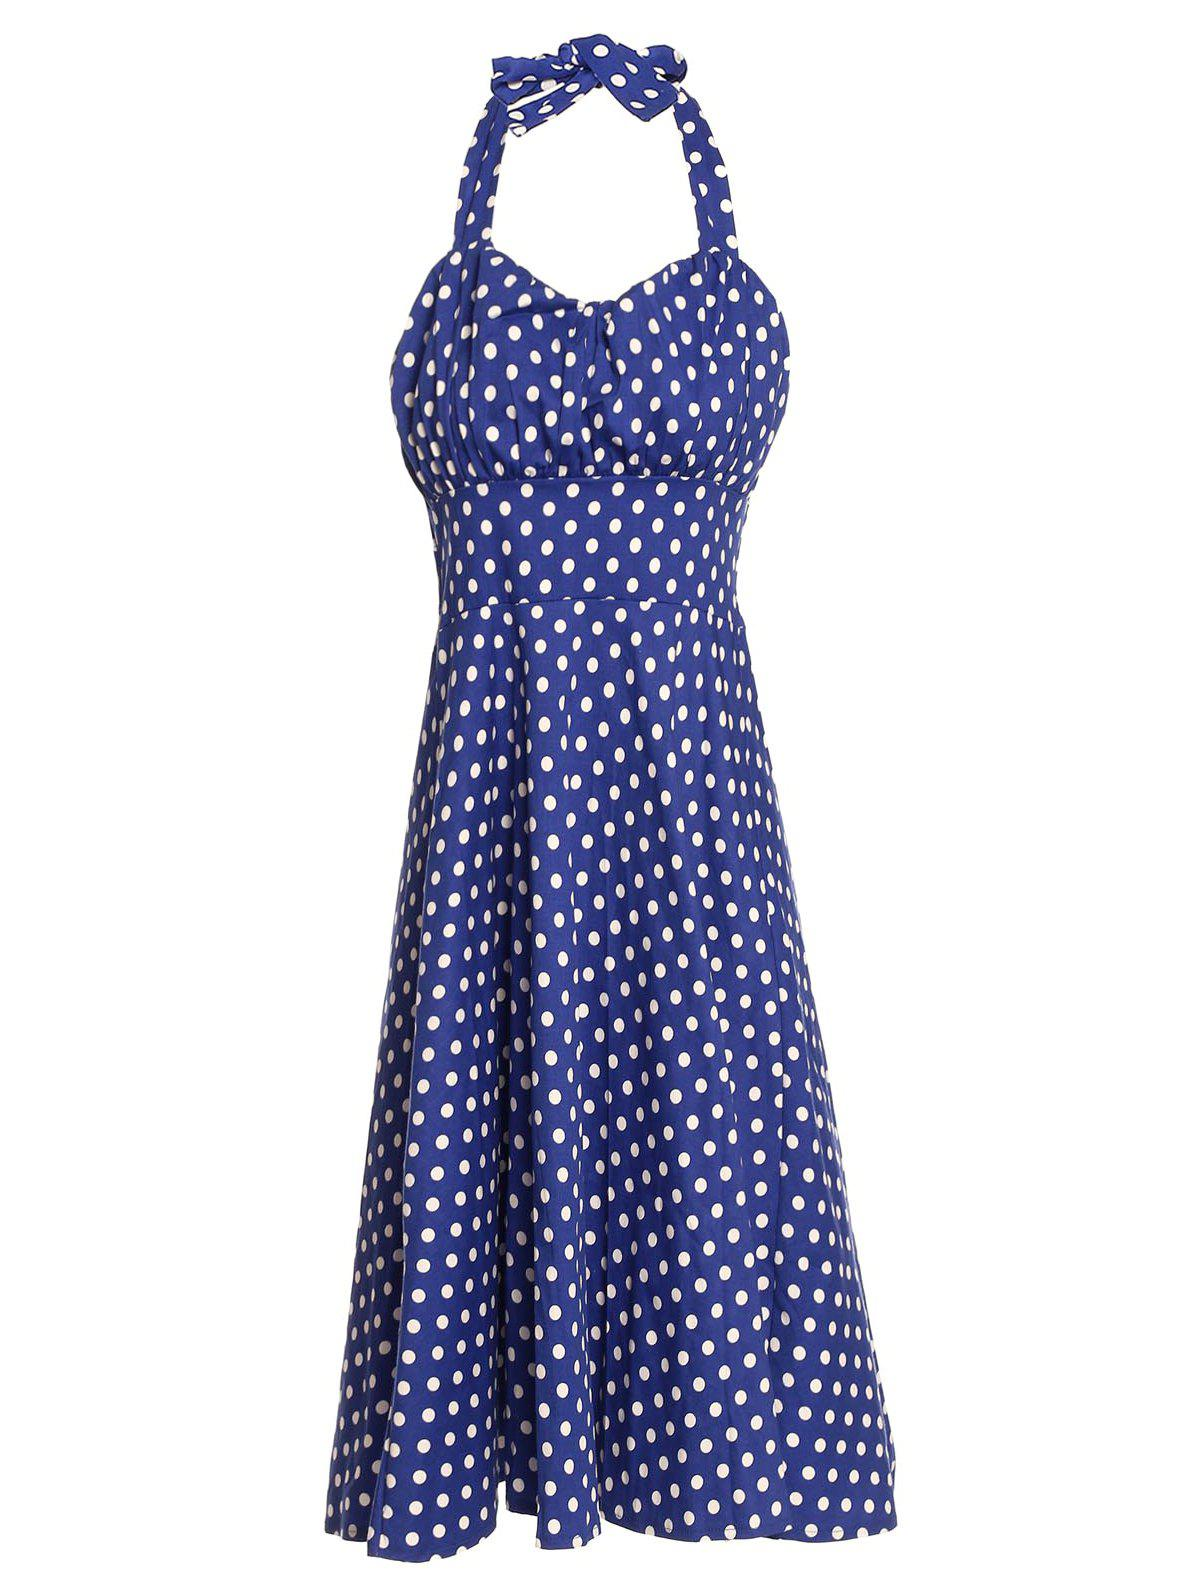 Vintage Polka Dot Print Halter Sleeveless Dress For Women - LIGHT BLUE S